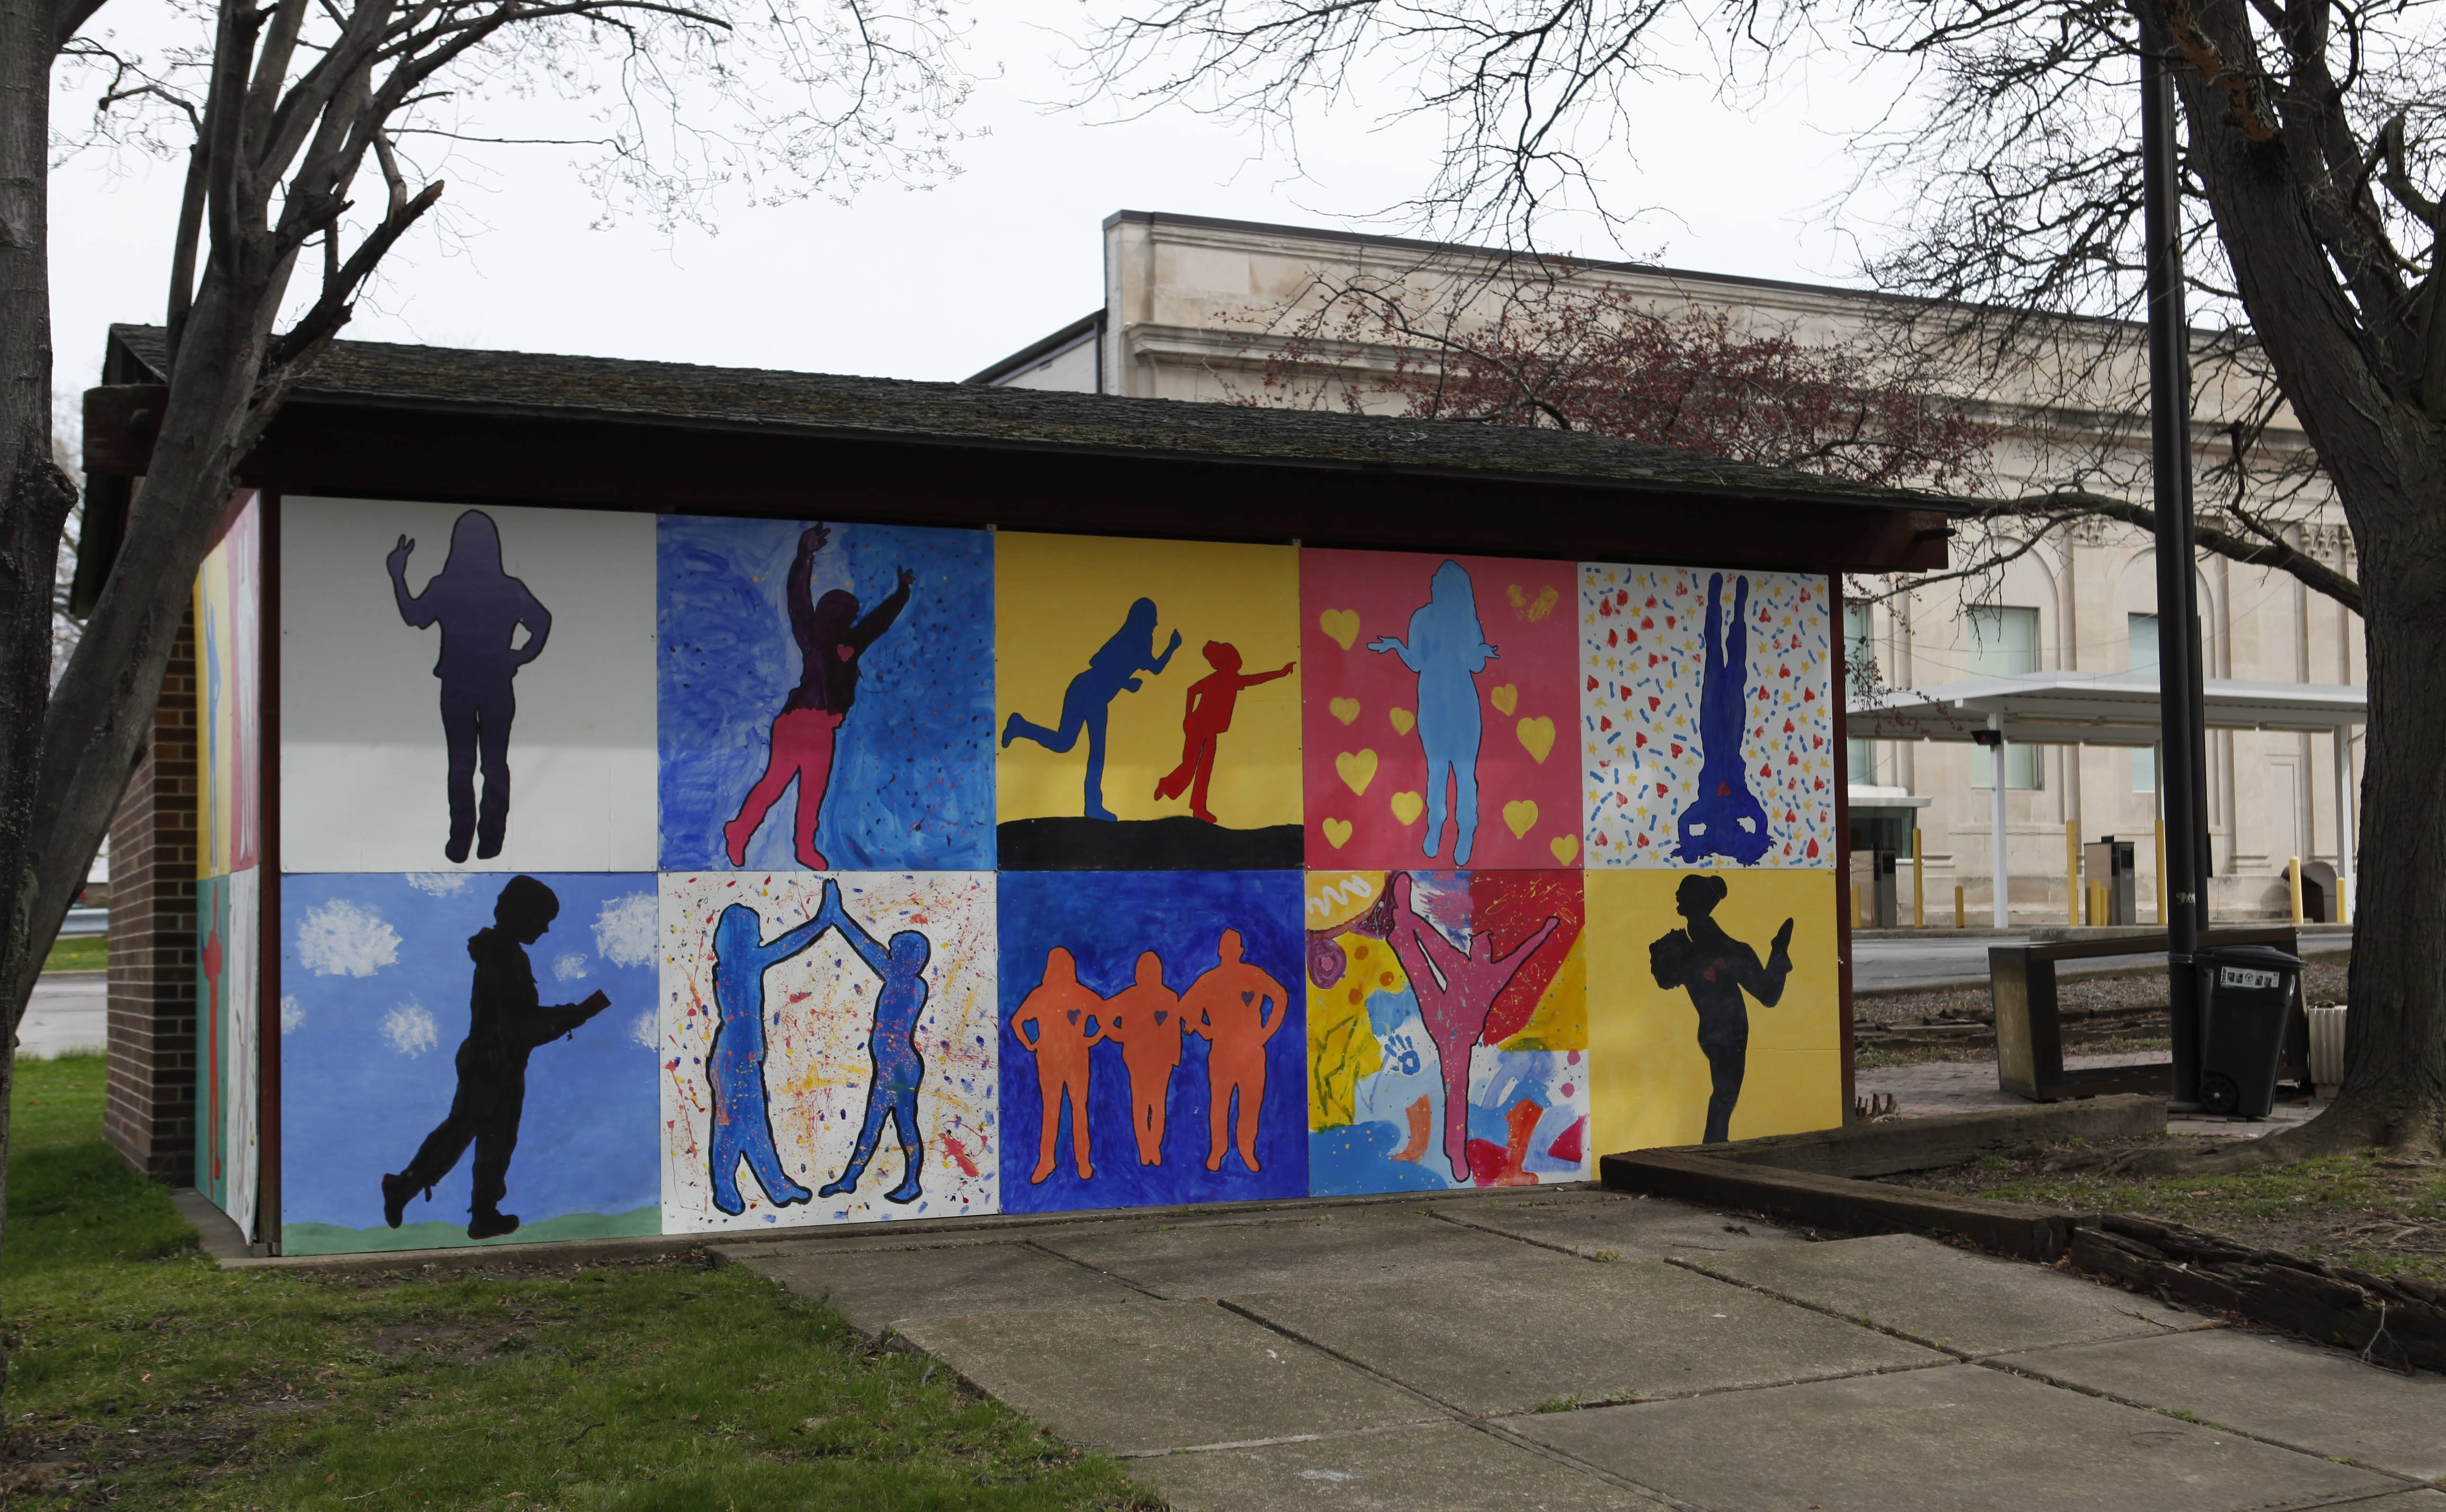 Students in the Niagara Liberty program, a drop-out prevention program in Niagara Falls, recently painted a mural on this building in Hydraulic Park. Lockport artist Alec Maslowski helped the students with their painting.